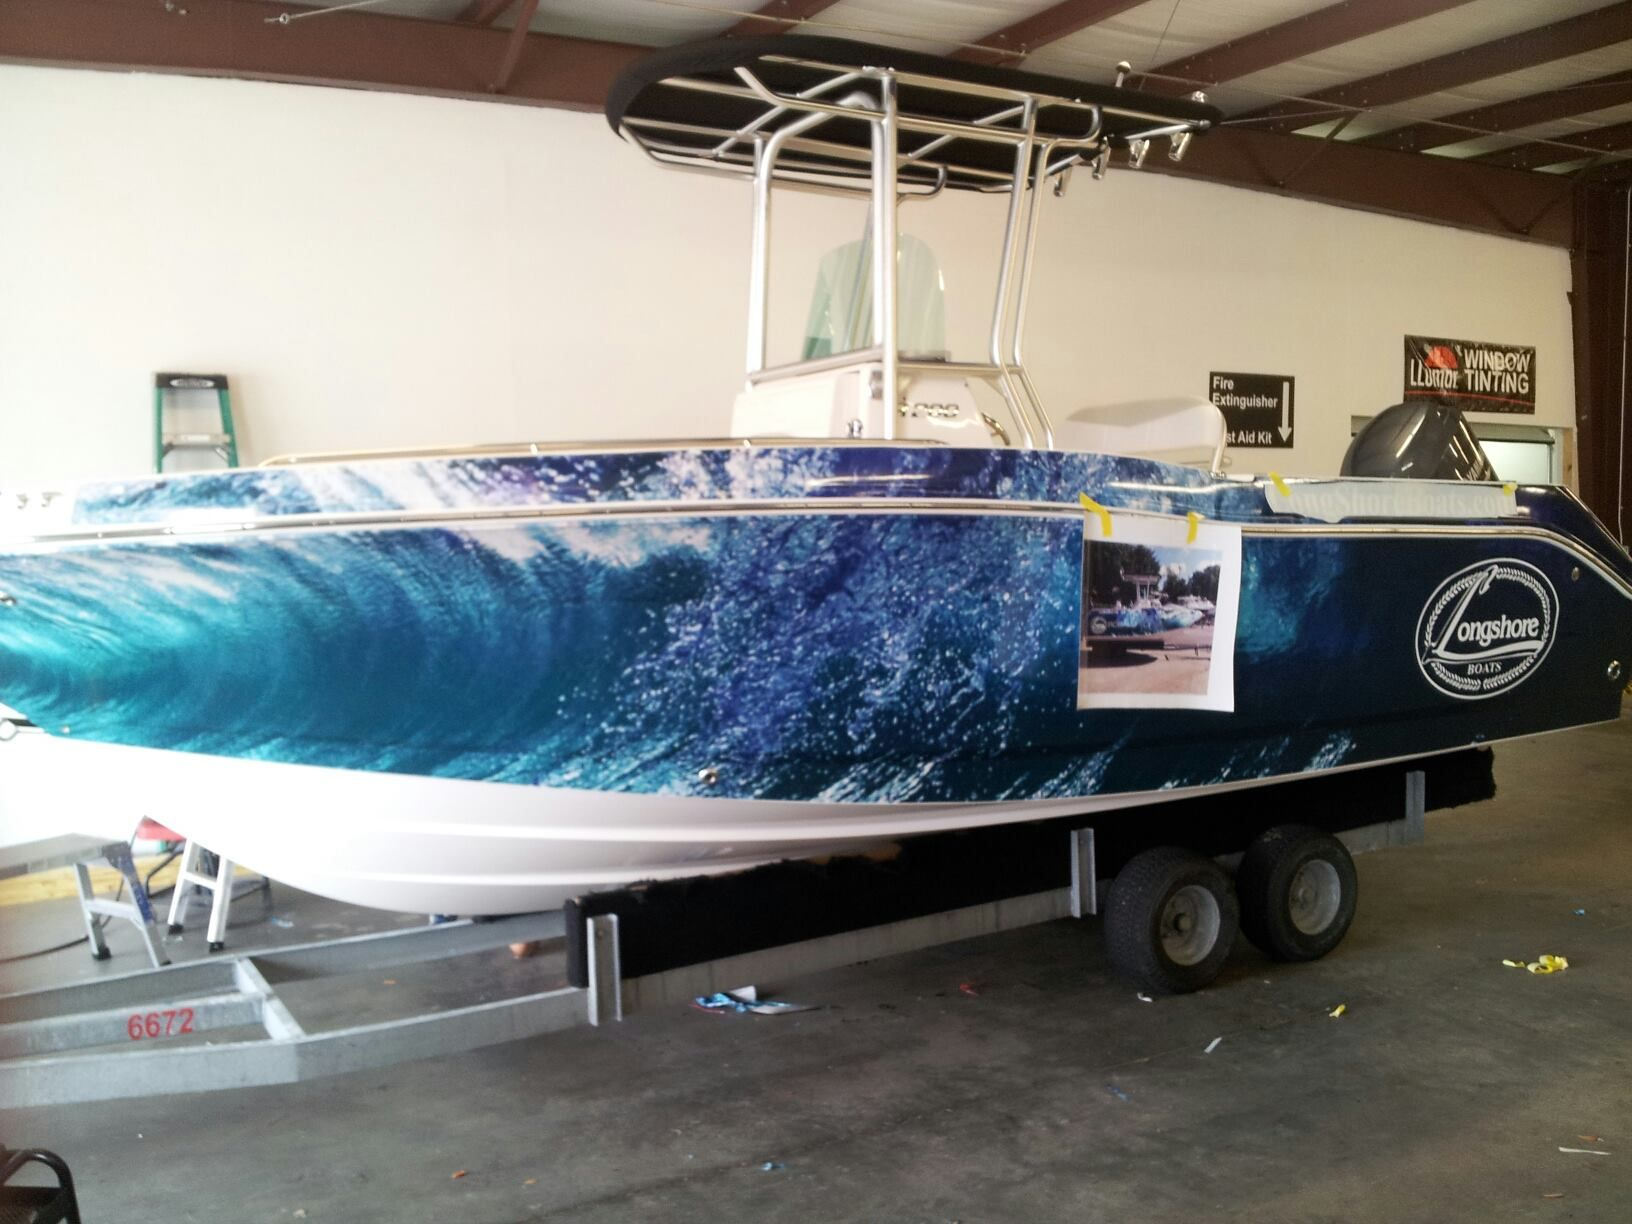 Pin By Pleasant Details On Car Boat Vinyl Wraps Boat Wraps Boat Design Boat Building